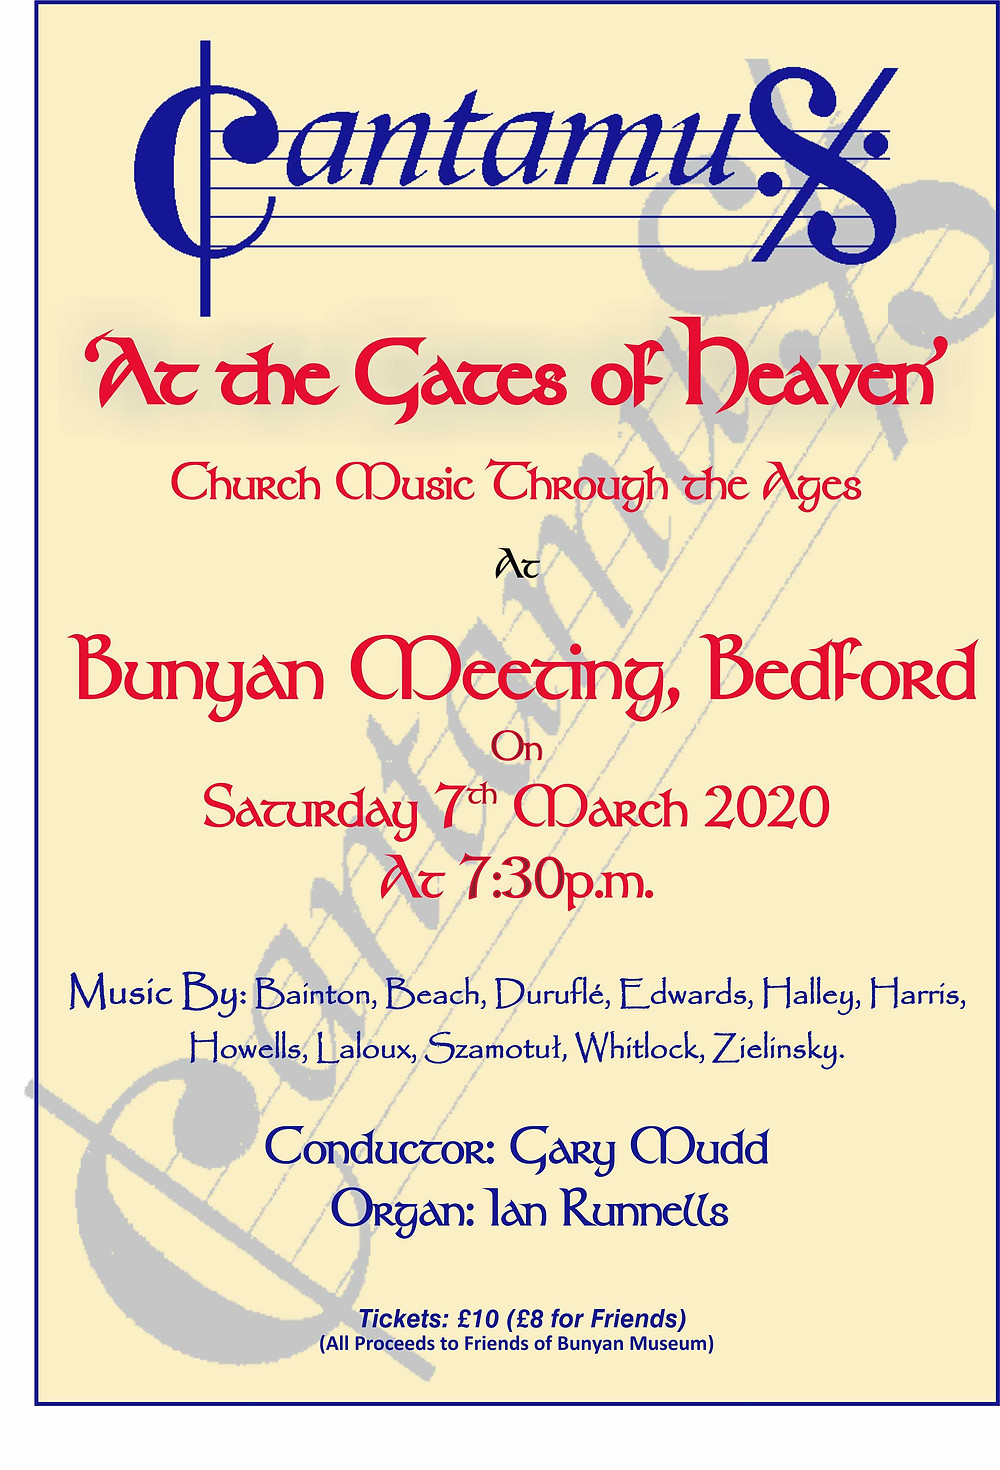 Poster for Cantamus 'At the Gates of Heaven' 7.30pm Saturday 7th March, Bunyan Meeting